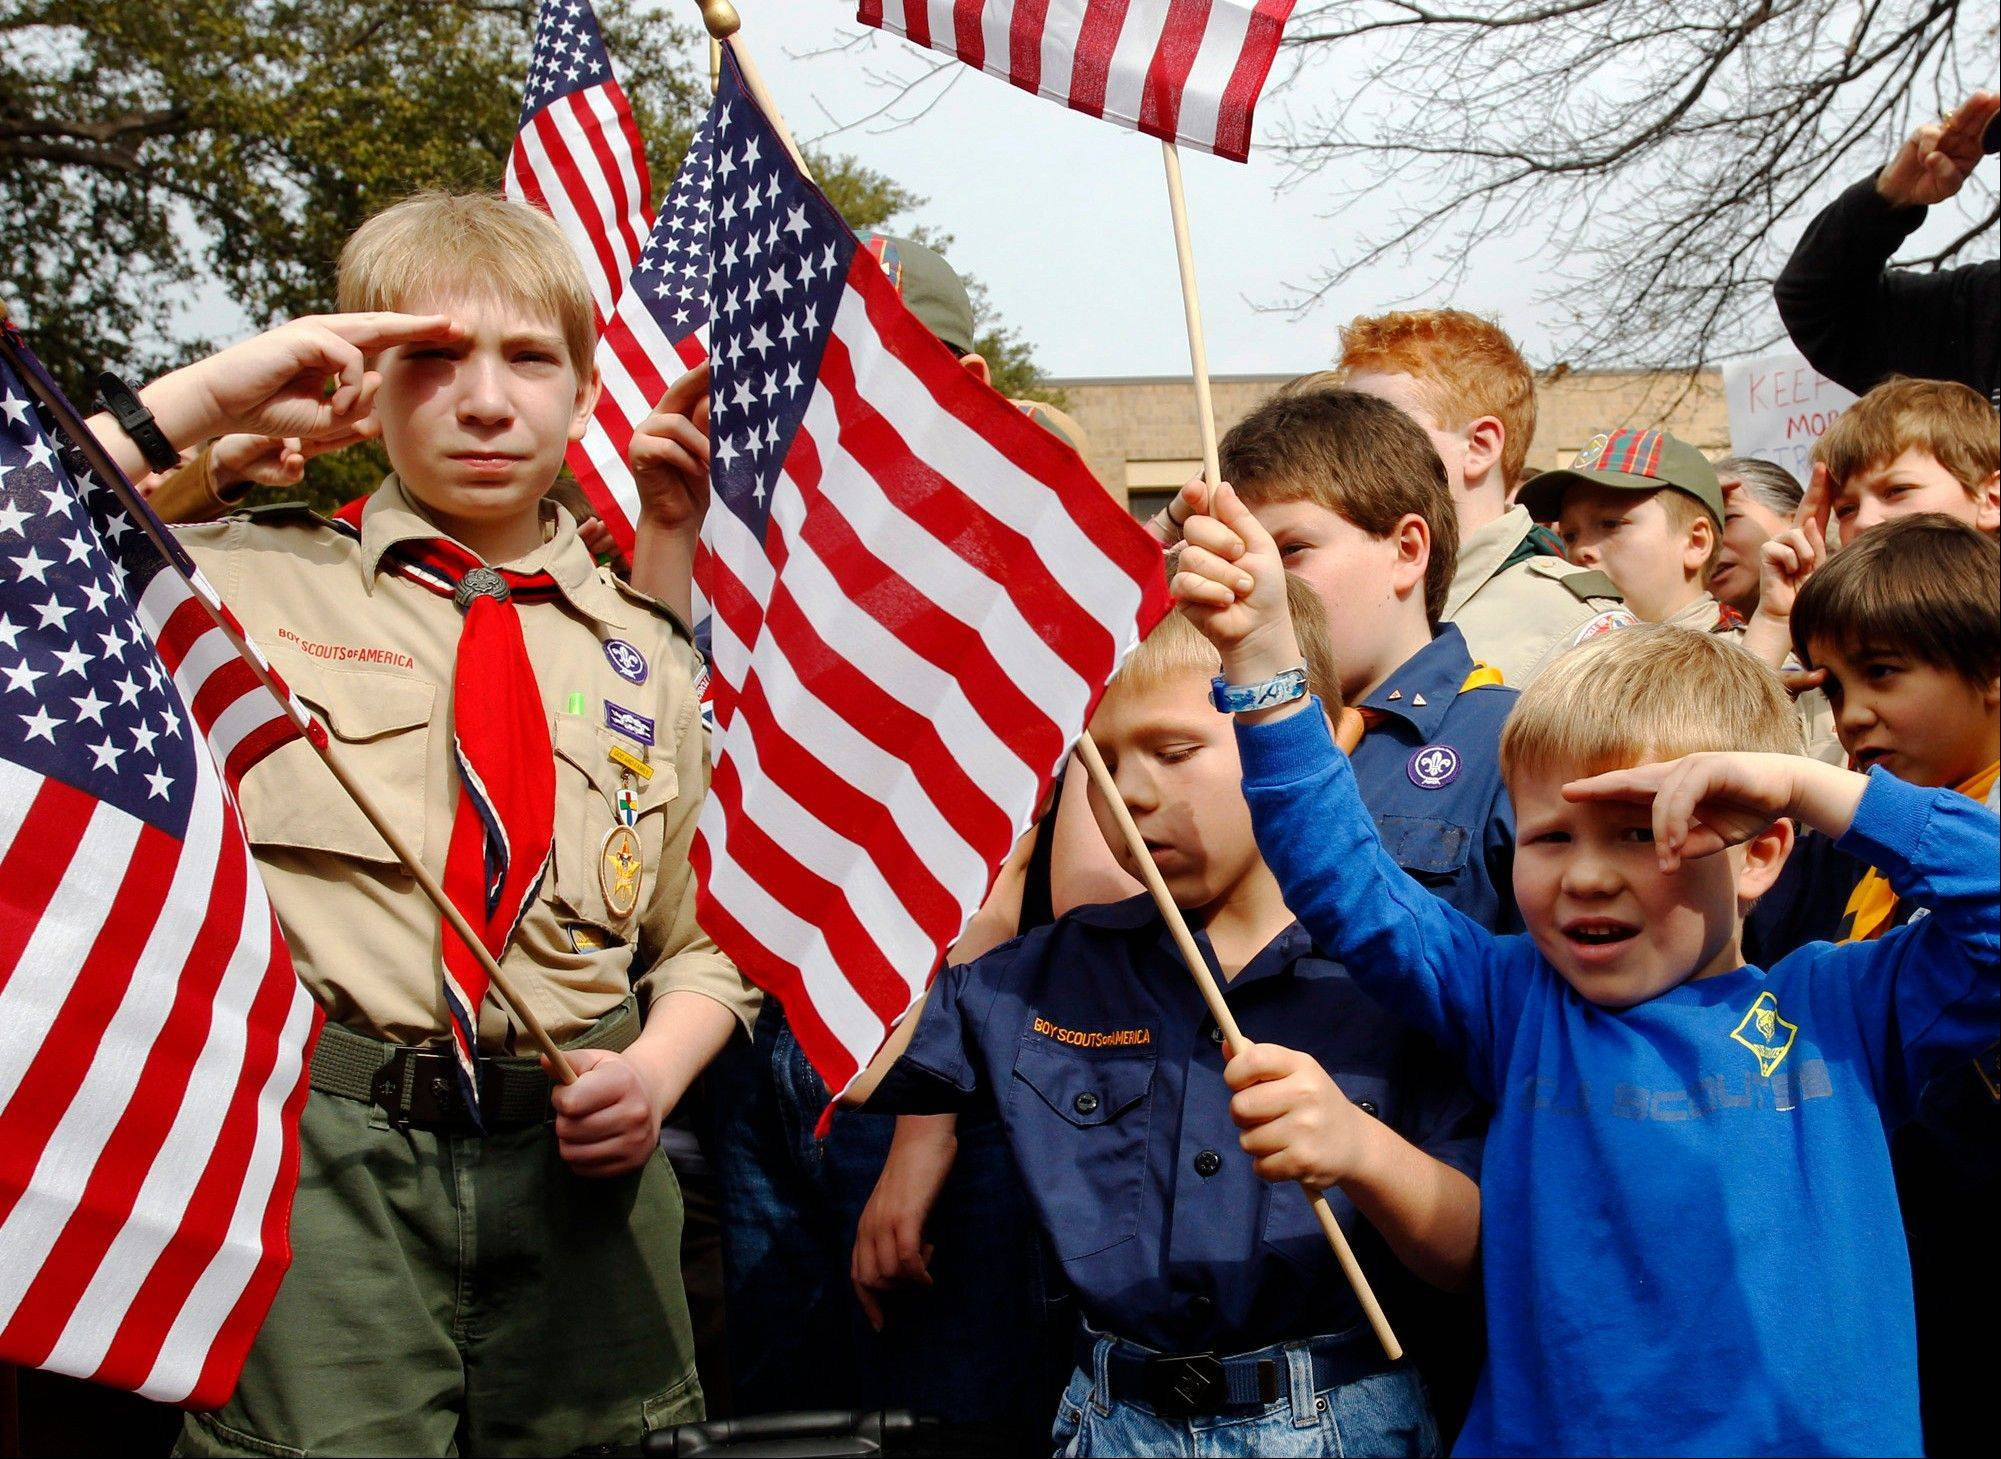 Associated Press/Feb. 6, 2013 From left, Joshua Kusterer, 12, Nach Mitschke, 6, and Wyatt Mitschke, 4, salute as they recite the pledge of allegiance during the �Save Our Scouts� prayer vigil and rally against allowing gays in the organization in front of the Boy Scouts of America National Headquarters in Dallas, Texas.